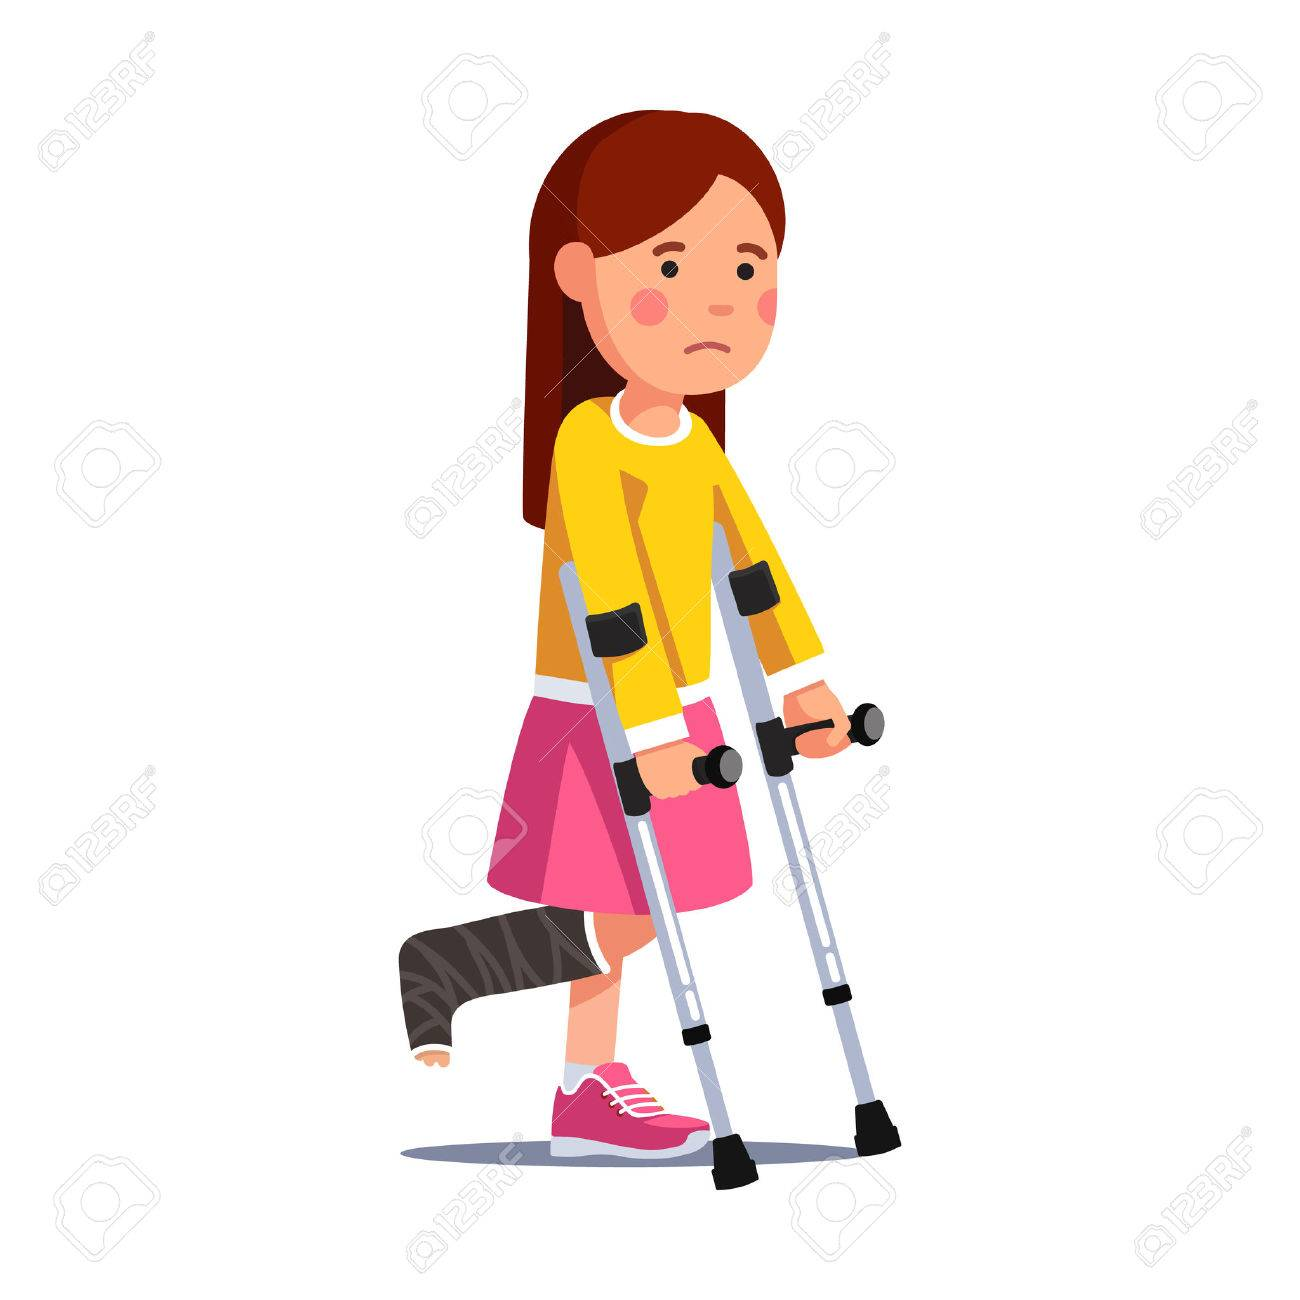 Broken leg cartoon clipart 5 » Clipart Station.